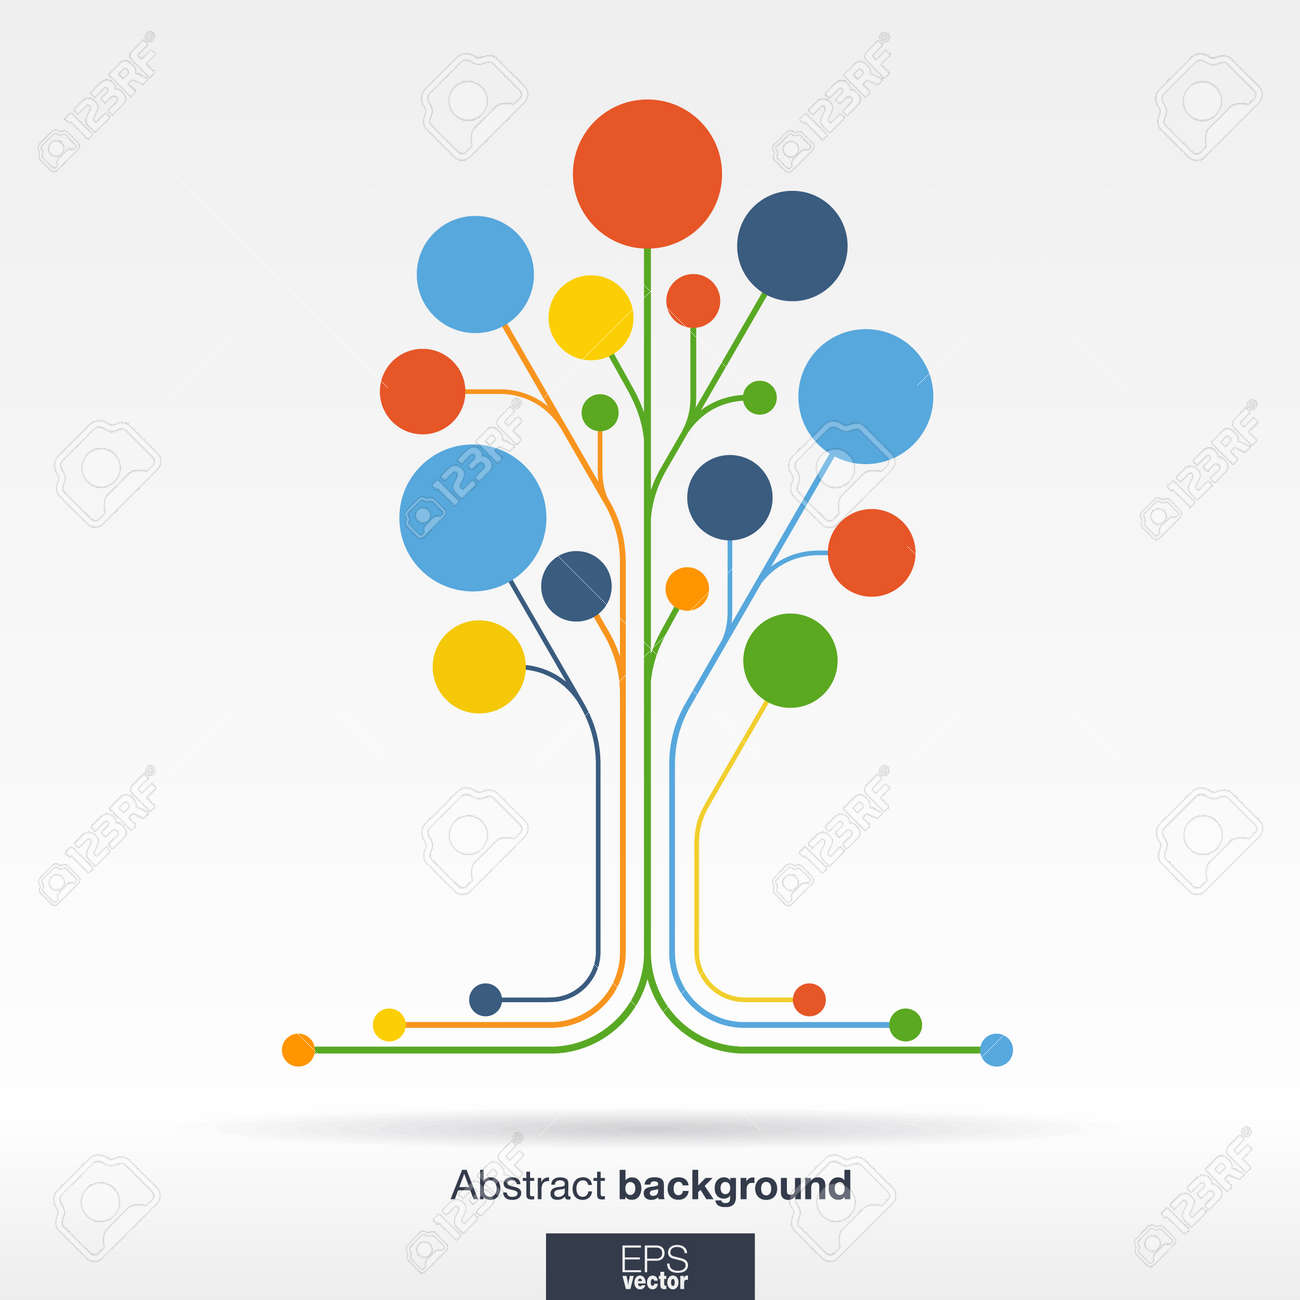 Abstract background with lines and color circles. Growth flower tree concept for communication business social media technology ecology network and web design. Flat Vector illustration. Stock Vector - 41722280